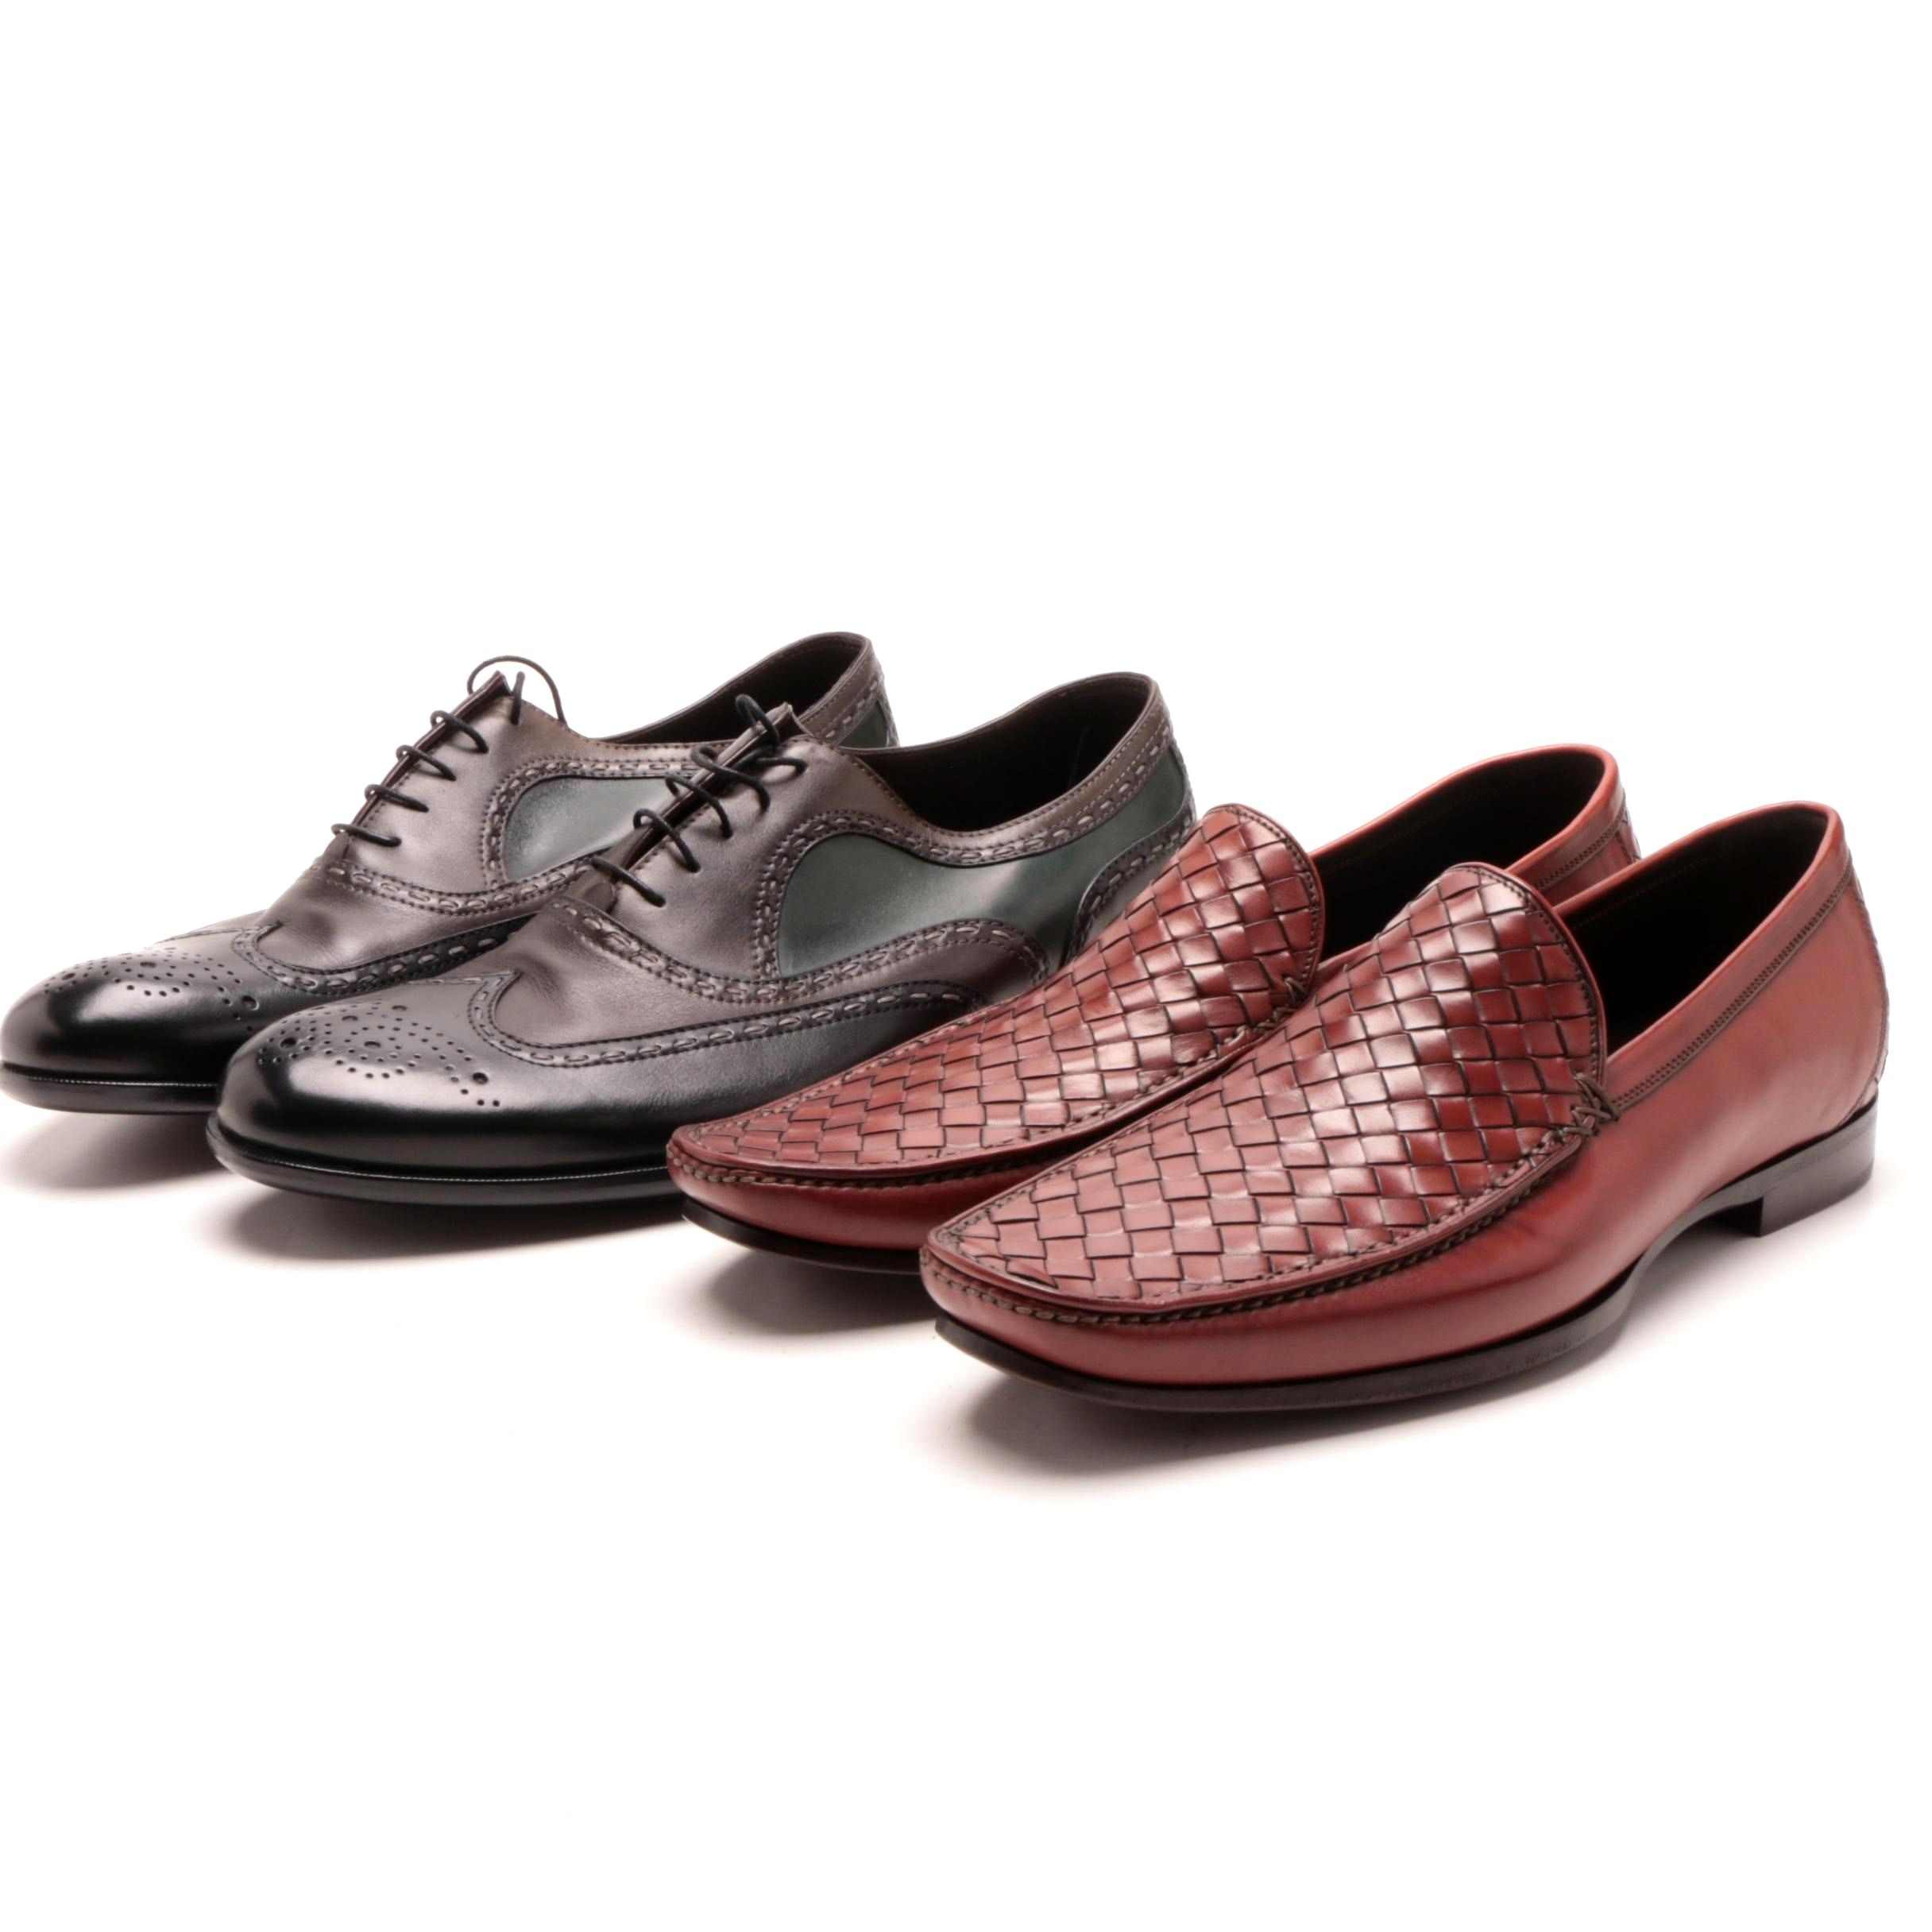 Men's Bottega Veneta Leather Wingtip Oxfords and Loafers